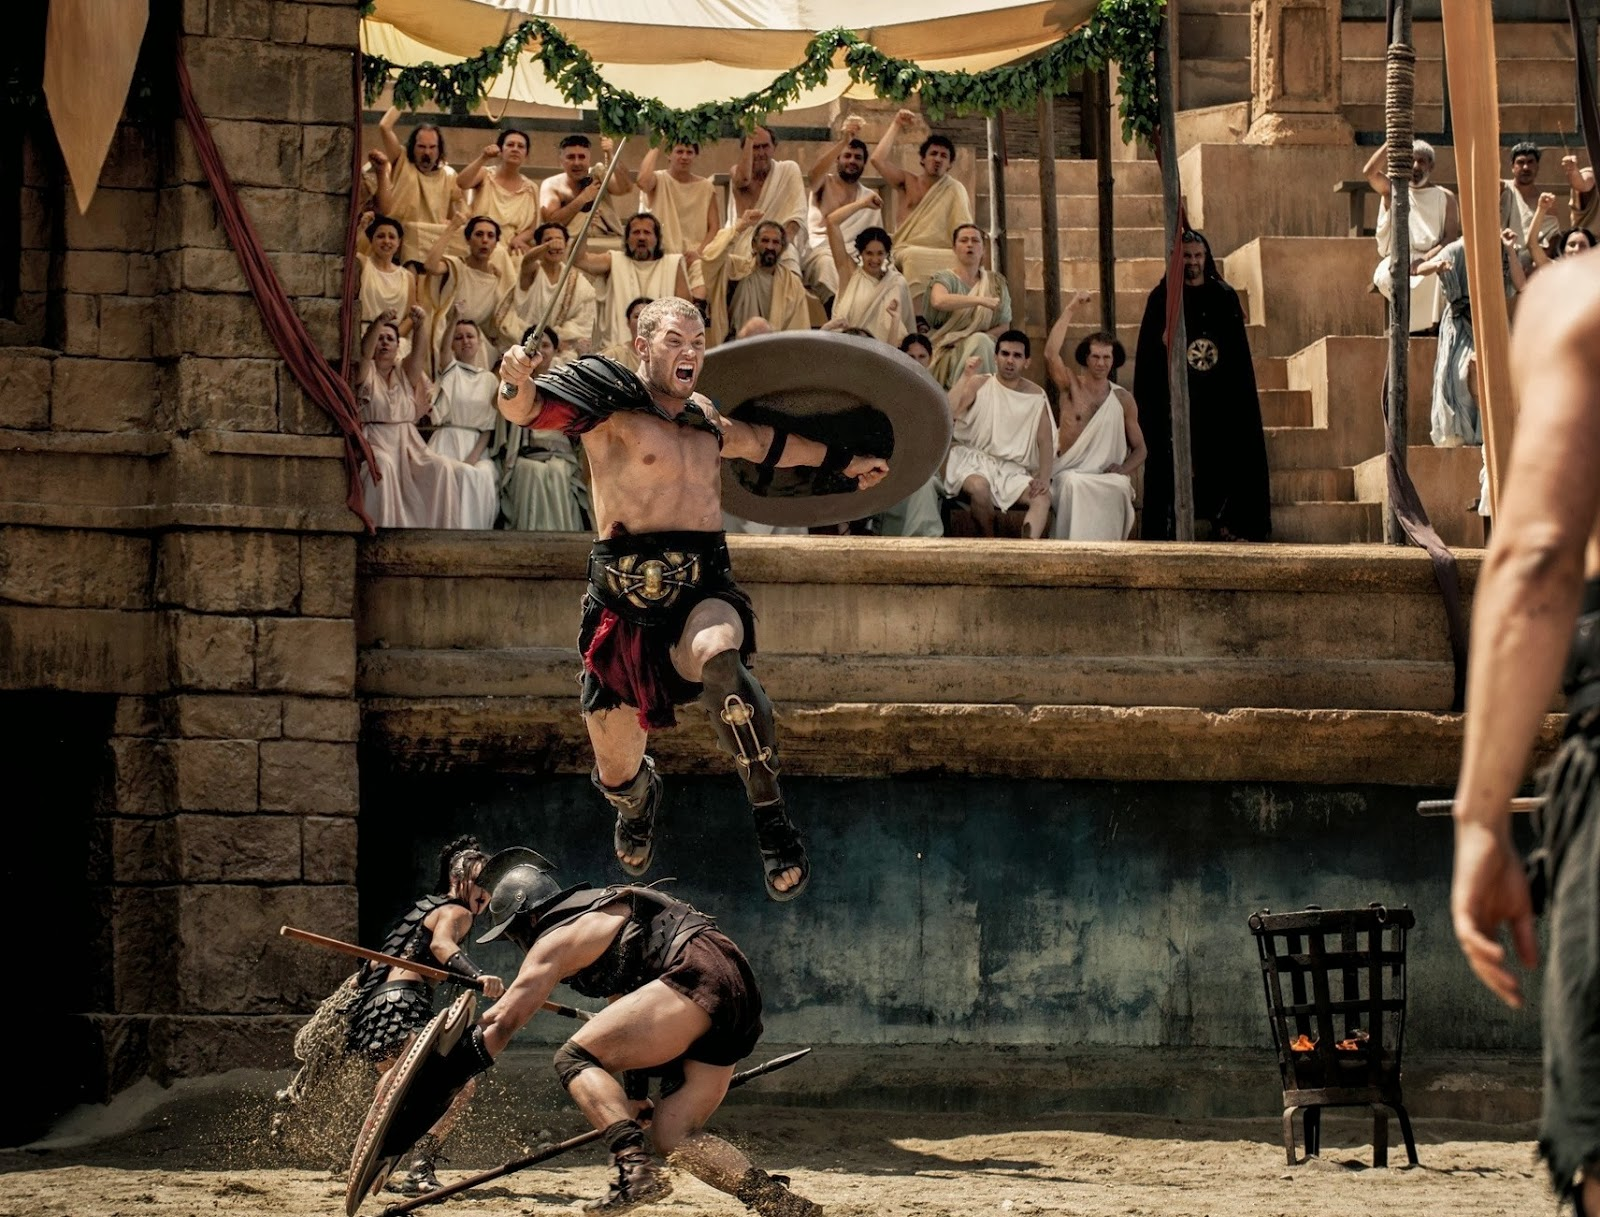 Happy New Year Movie Hd Wallpaper Download Watch All Dramas The Legend Of Hercules Official Trailer